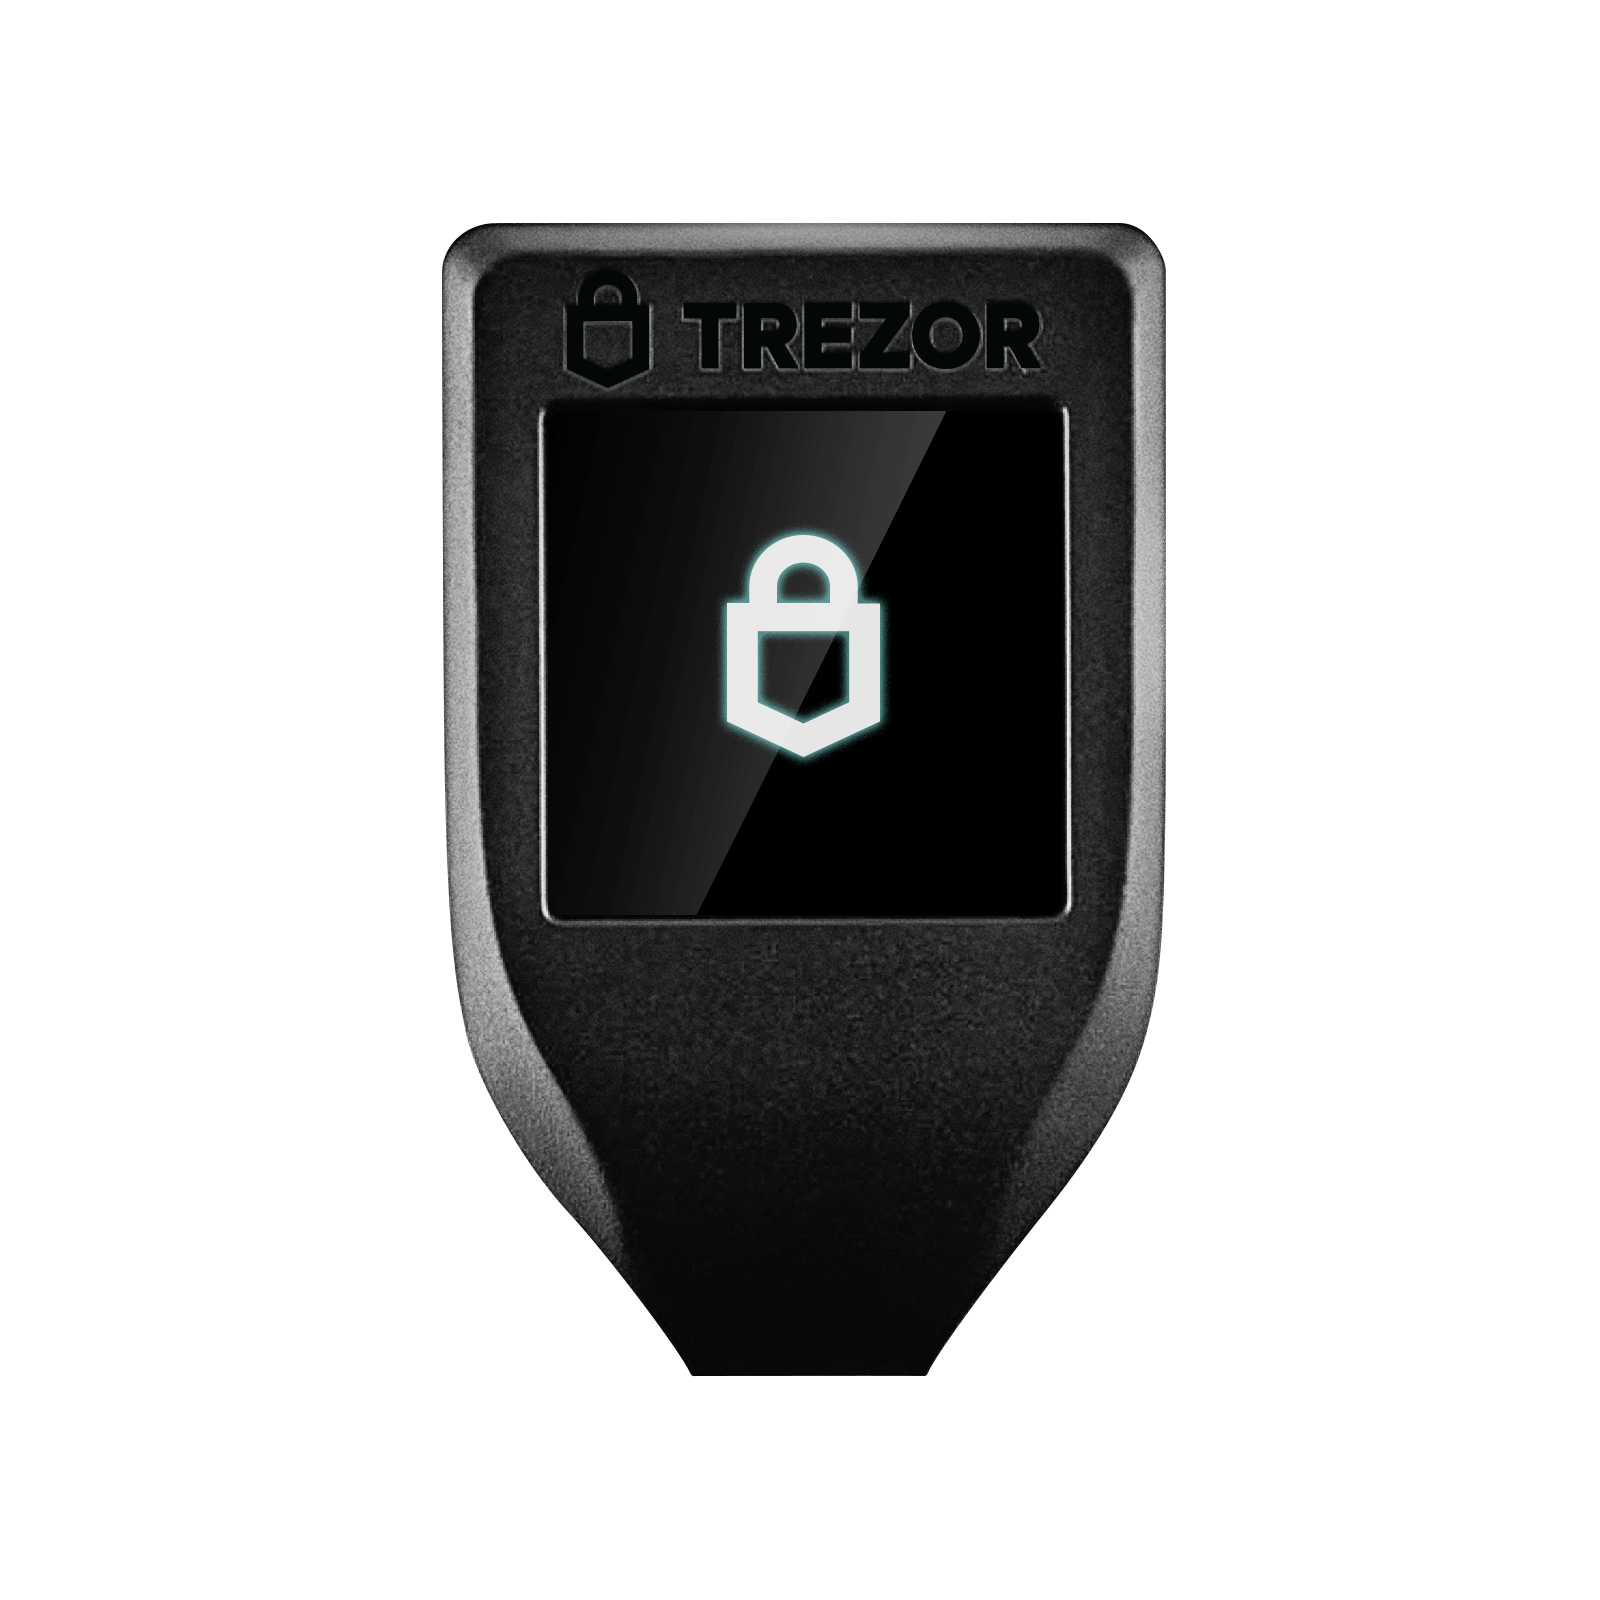 Trezor Hardware wallet Ledger hardware wallet Minergate Cloud Mining Pool 3commas Trezor Ledger Model T Tokens.Net Platform Binance Crypto Currency Exchange Local Bitcoins service trading Buybit BTC Exchange Trezor One Metallic Bitcoin Litecoin Dash XRP ETH ETHEREUM BYTCION COIN X11 Scrypt